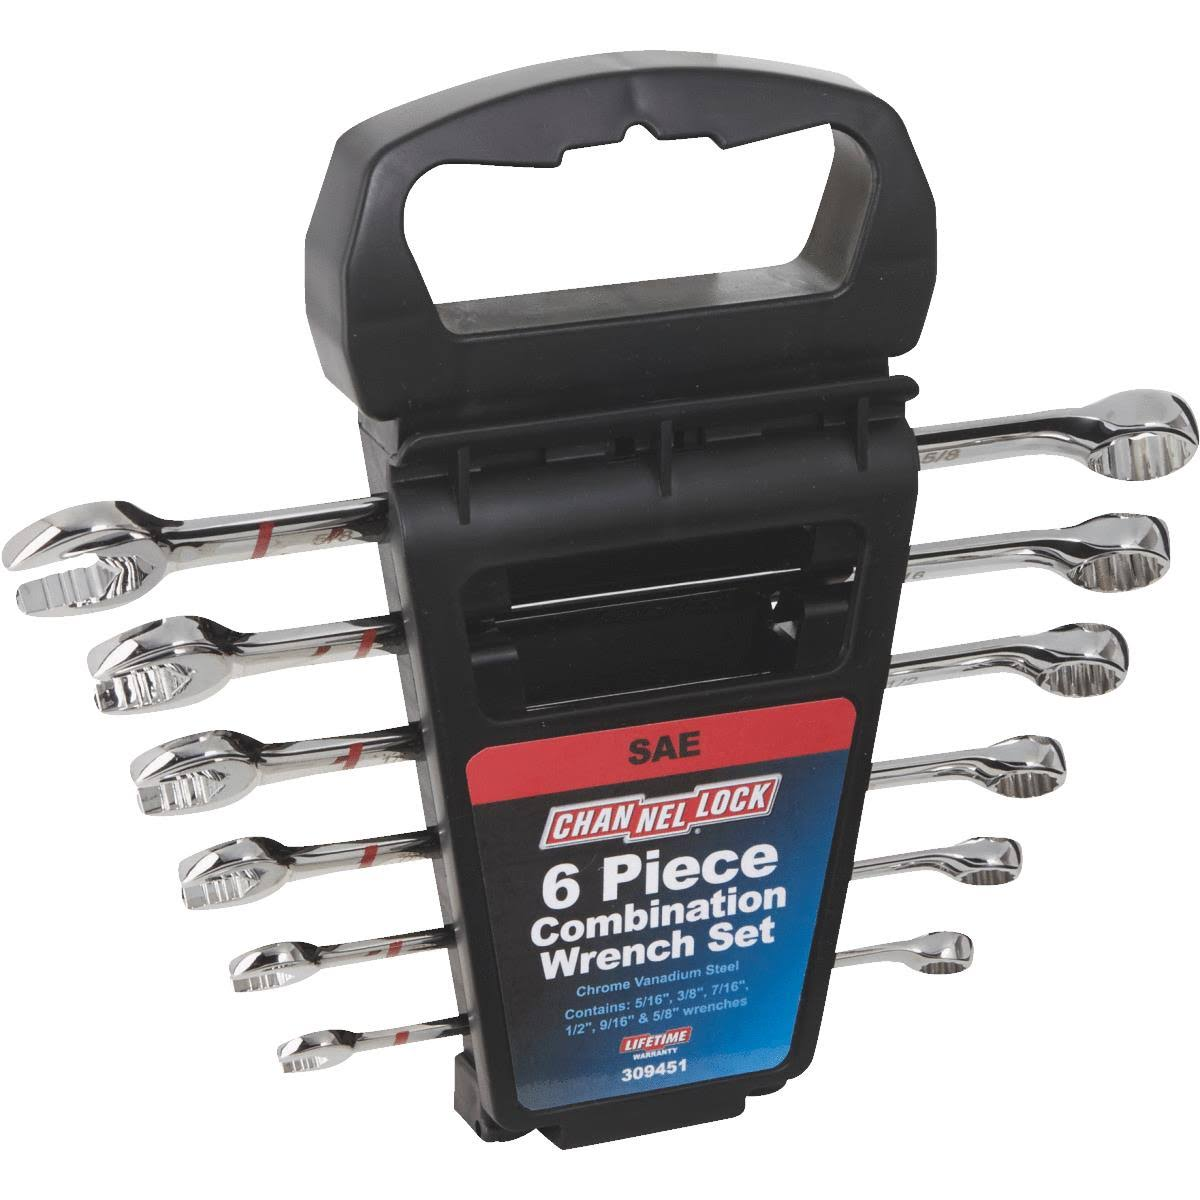 Channellock Products Combination Wrench Set - 6pcs